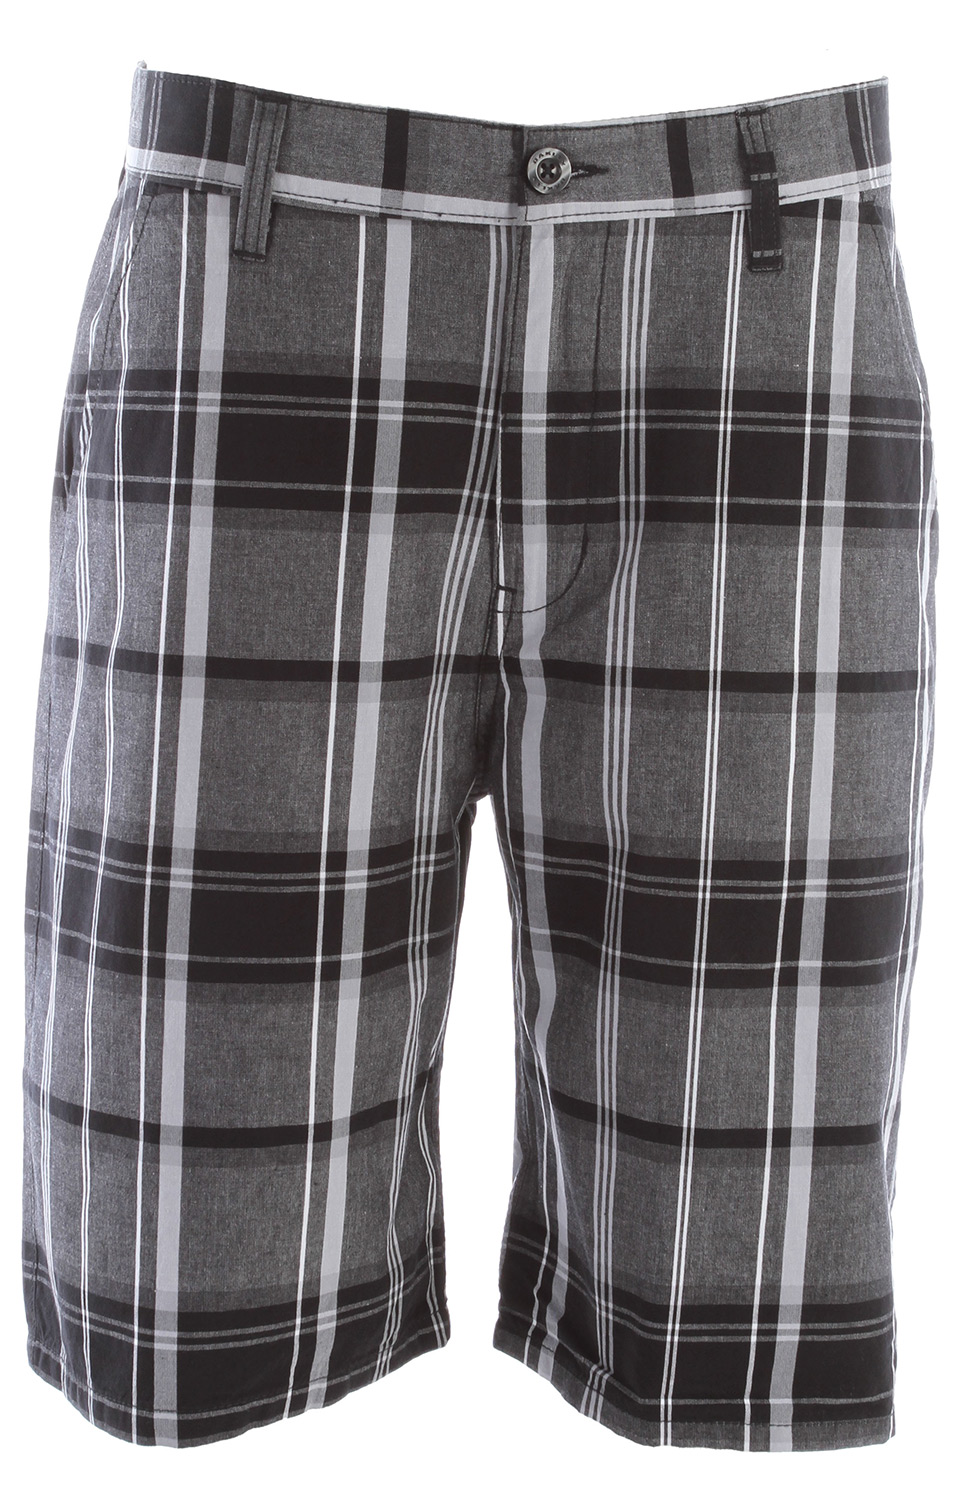 Yarn-dye plaid walkshorts with button closure, zip fly, back welt pockets, front logo embroidery and back flat label.Key Features of the Oakley False Bay Shorts: 100% cotton Regular fit - $32.95